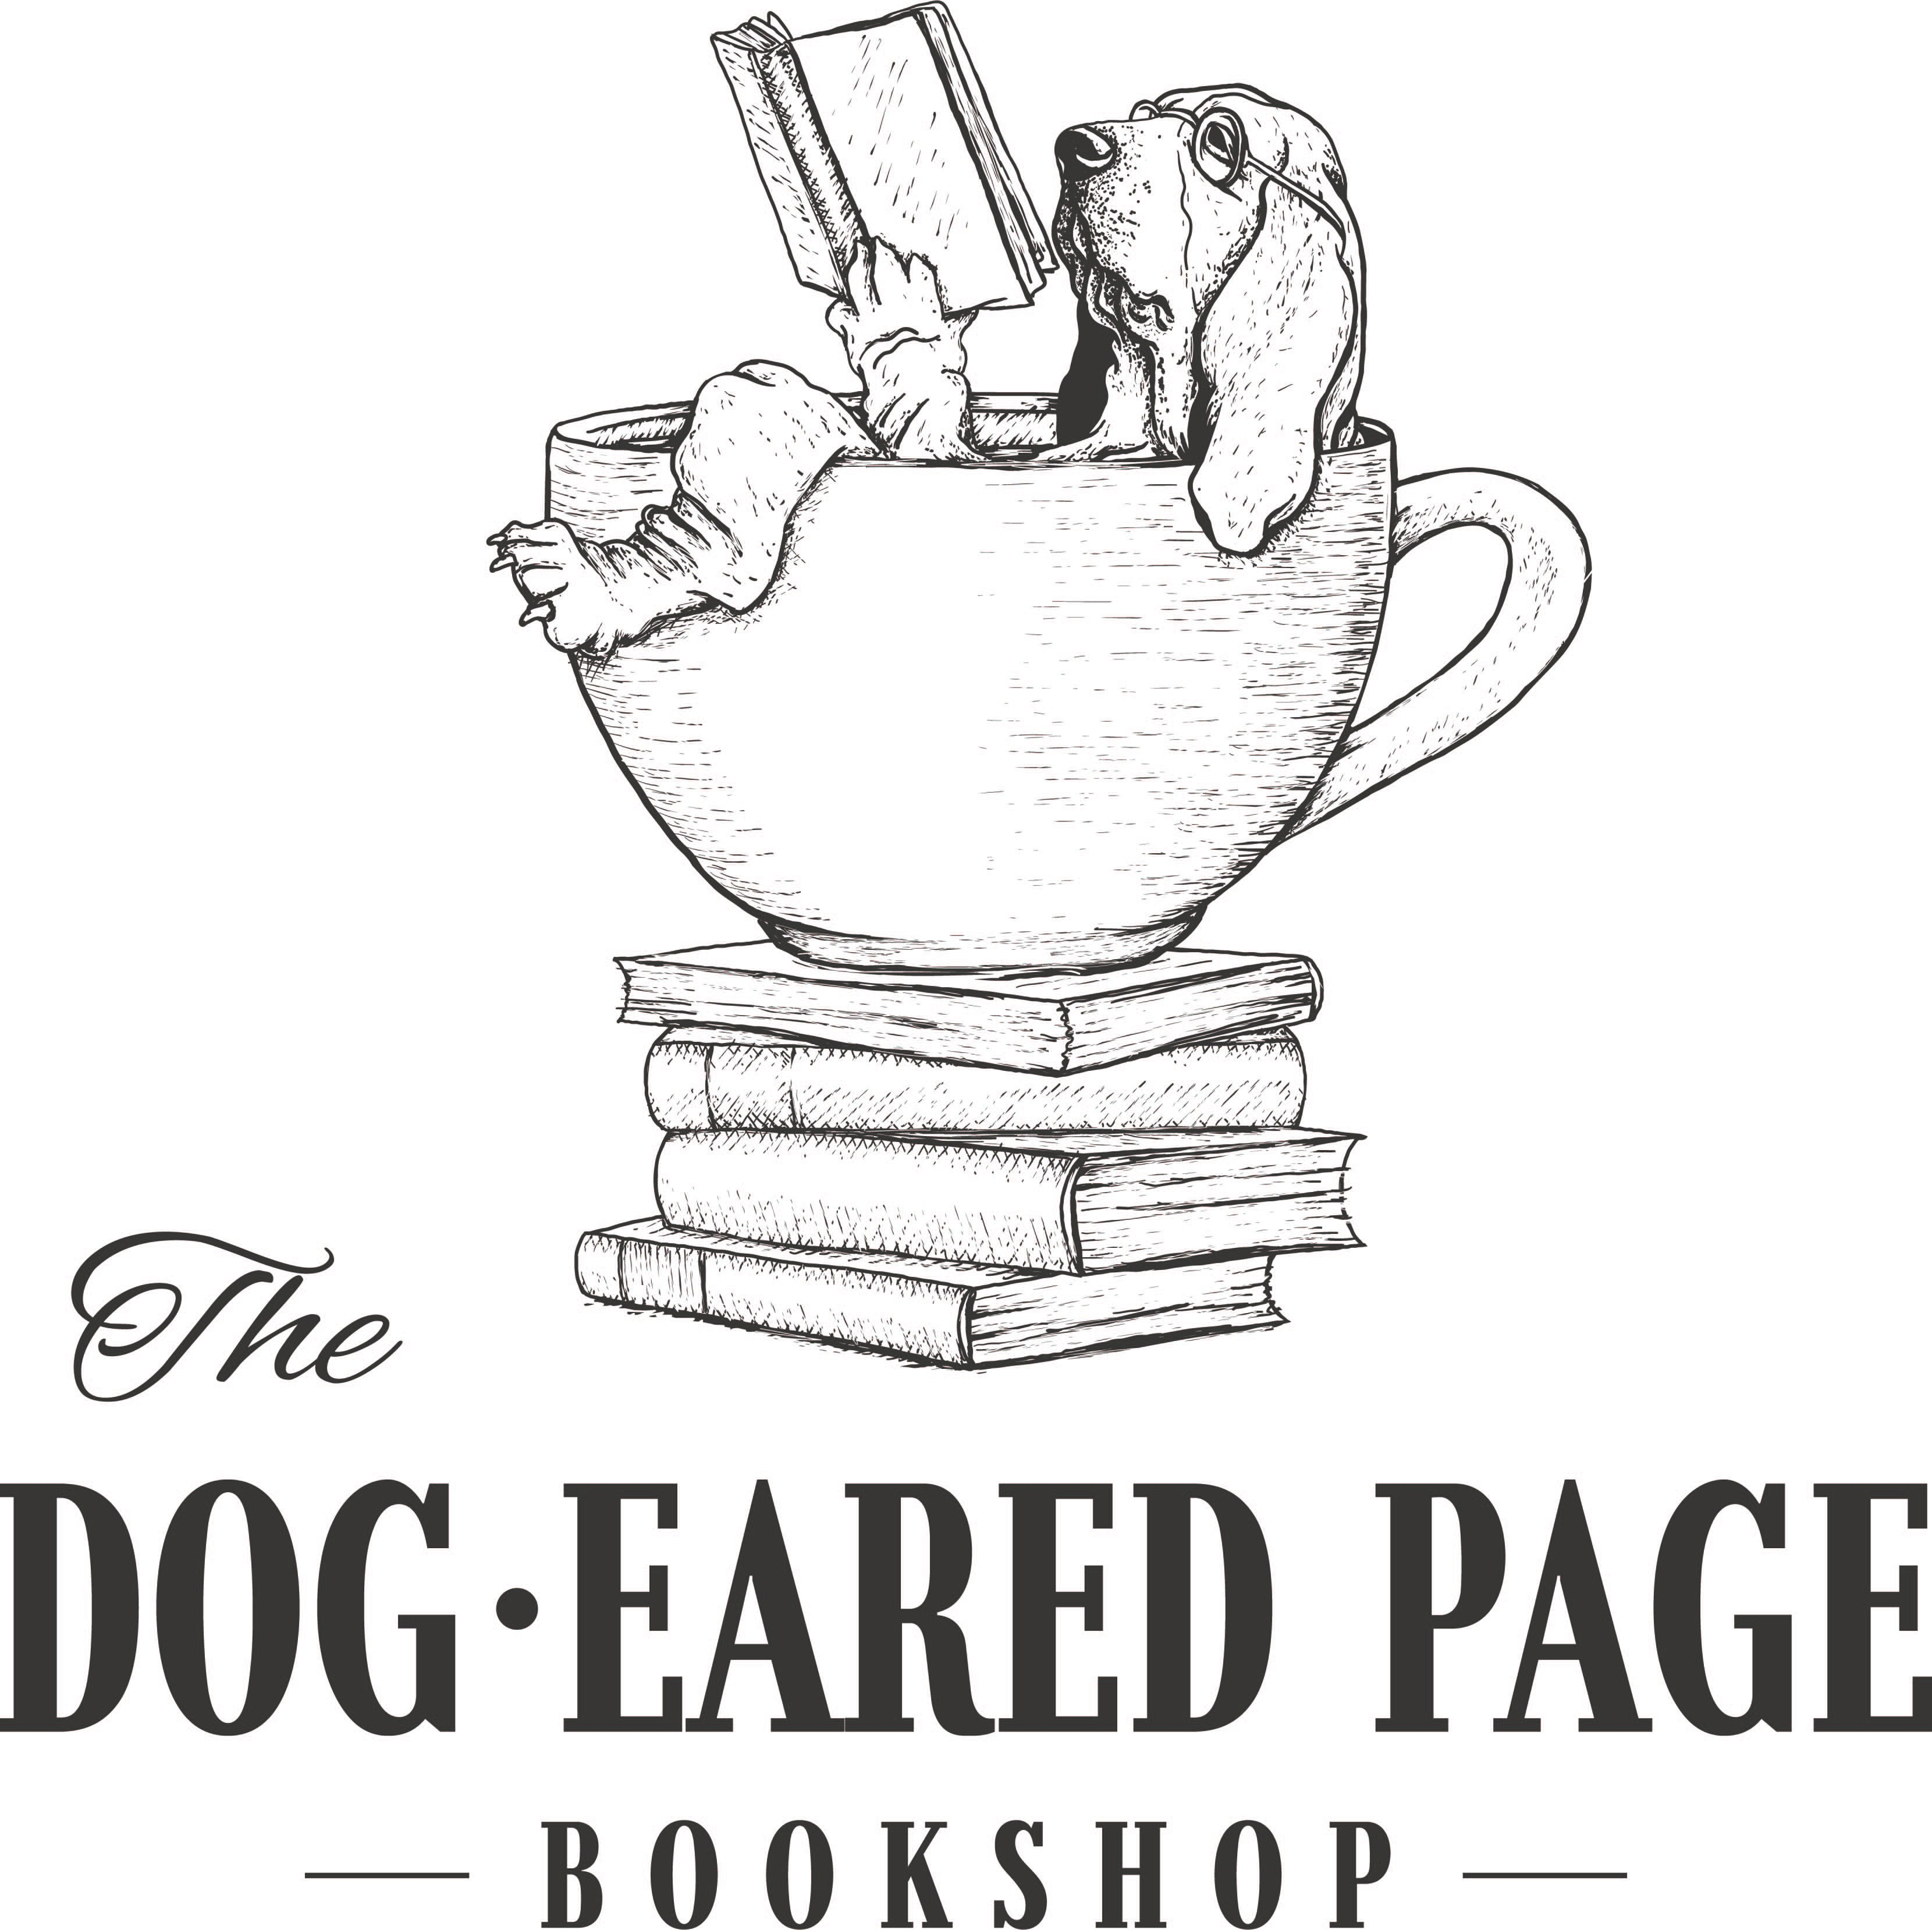 We need an intriguing logo for new bookshop